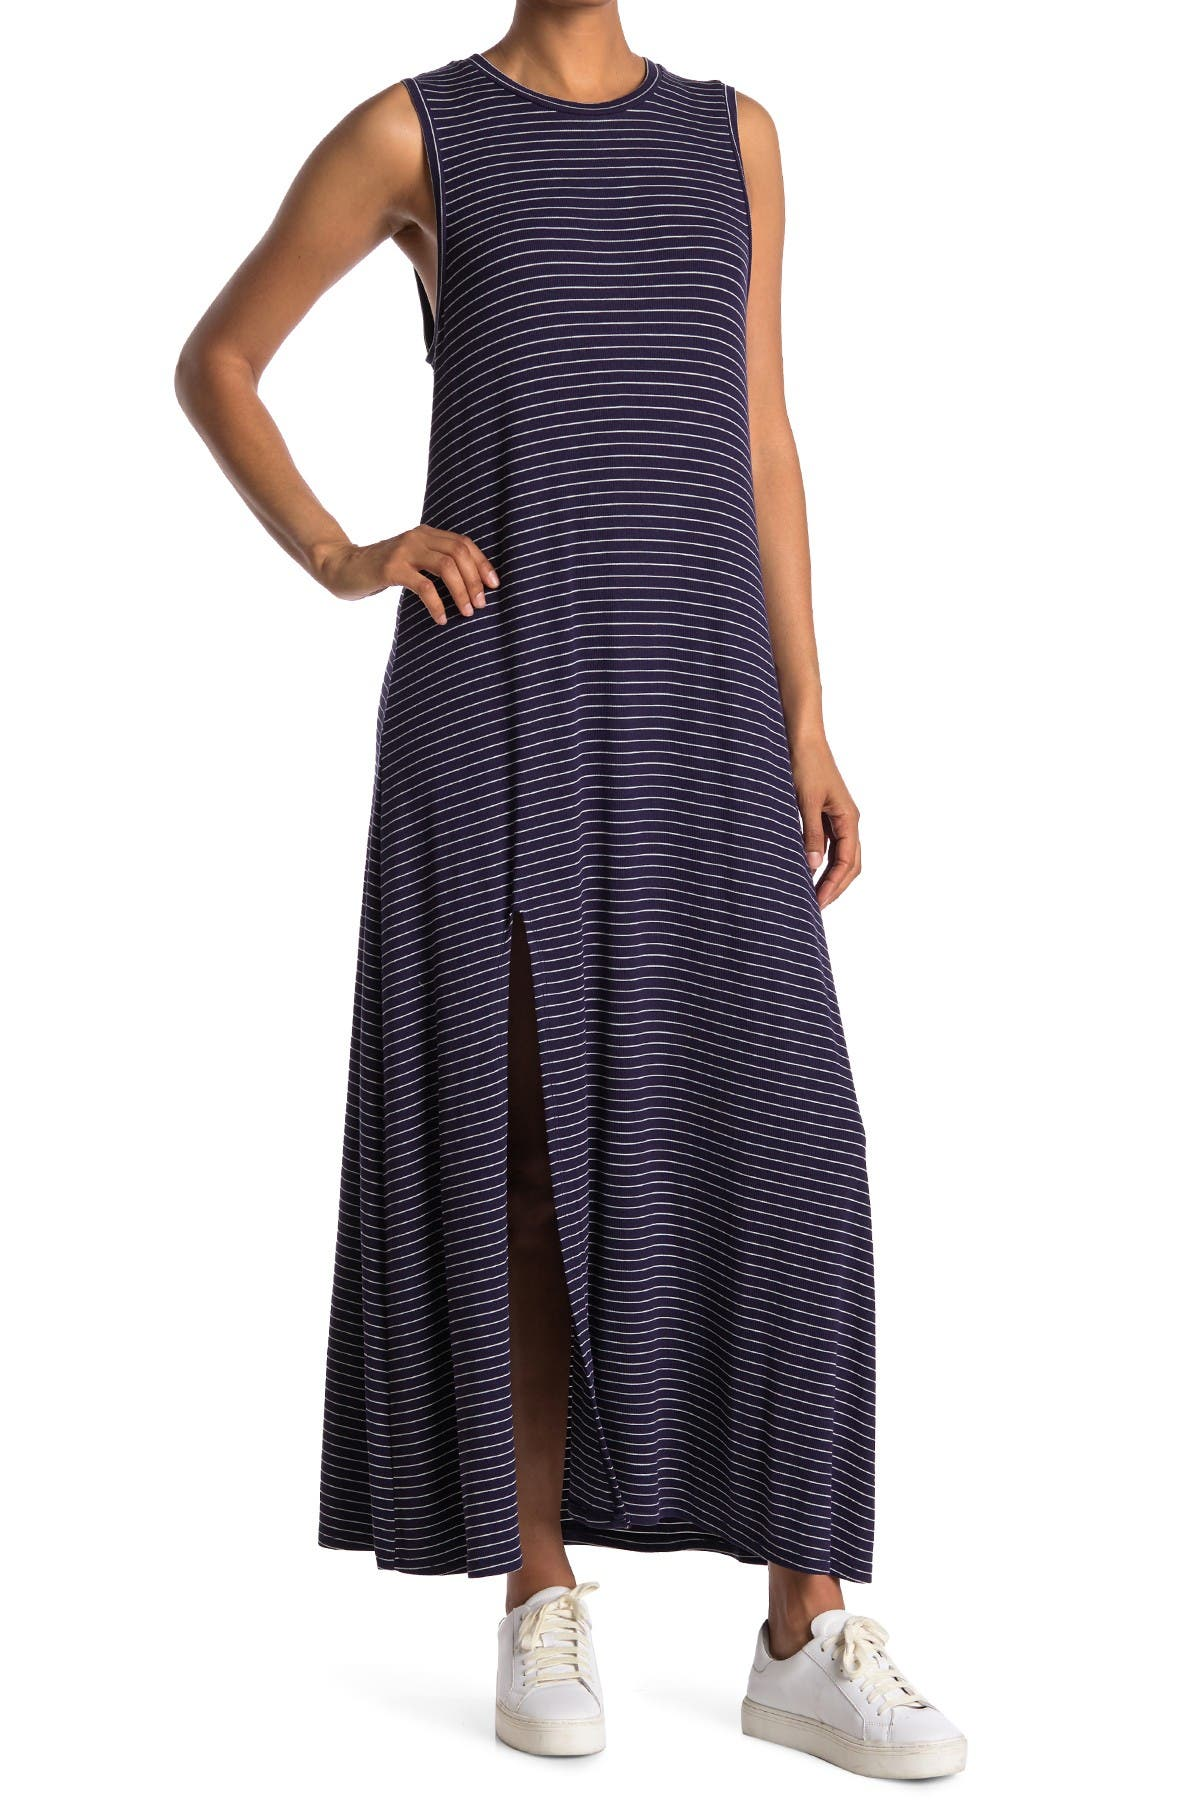 Image of NSR Yazmin Sleeveless Maxi Dress